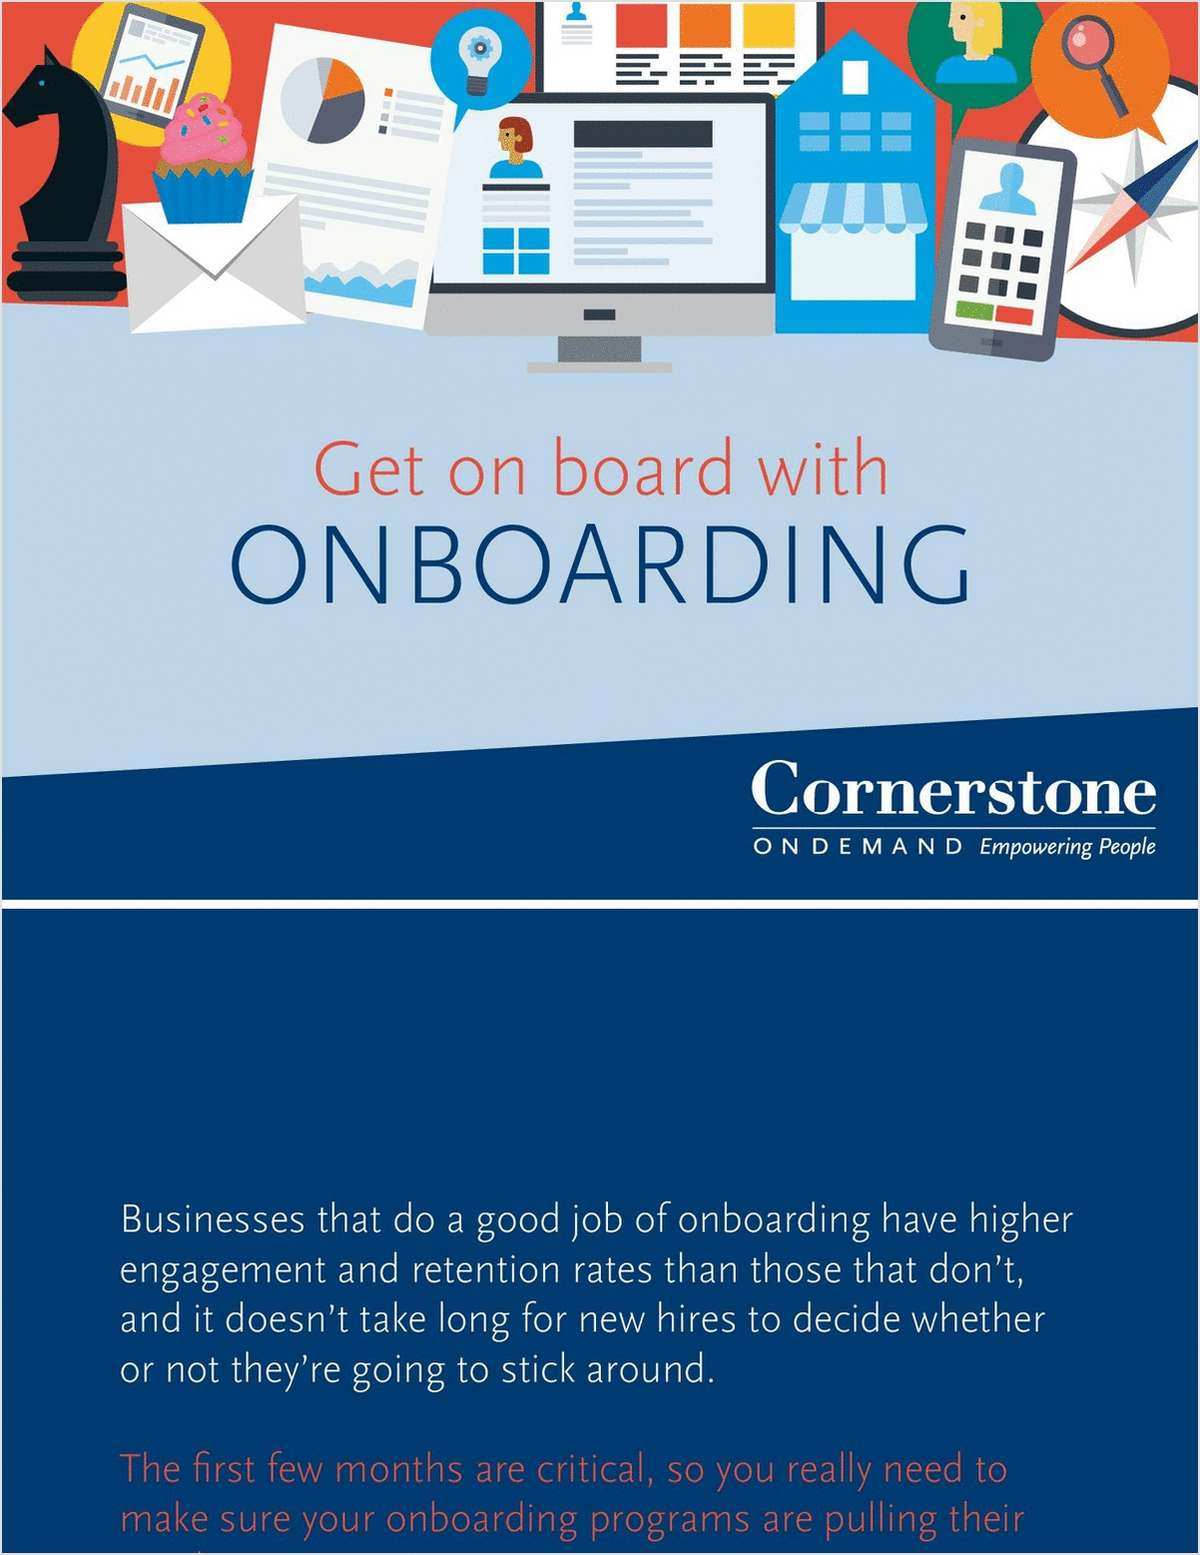 Getting Onboard with Onboarding